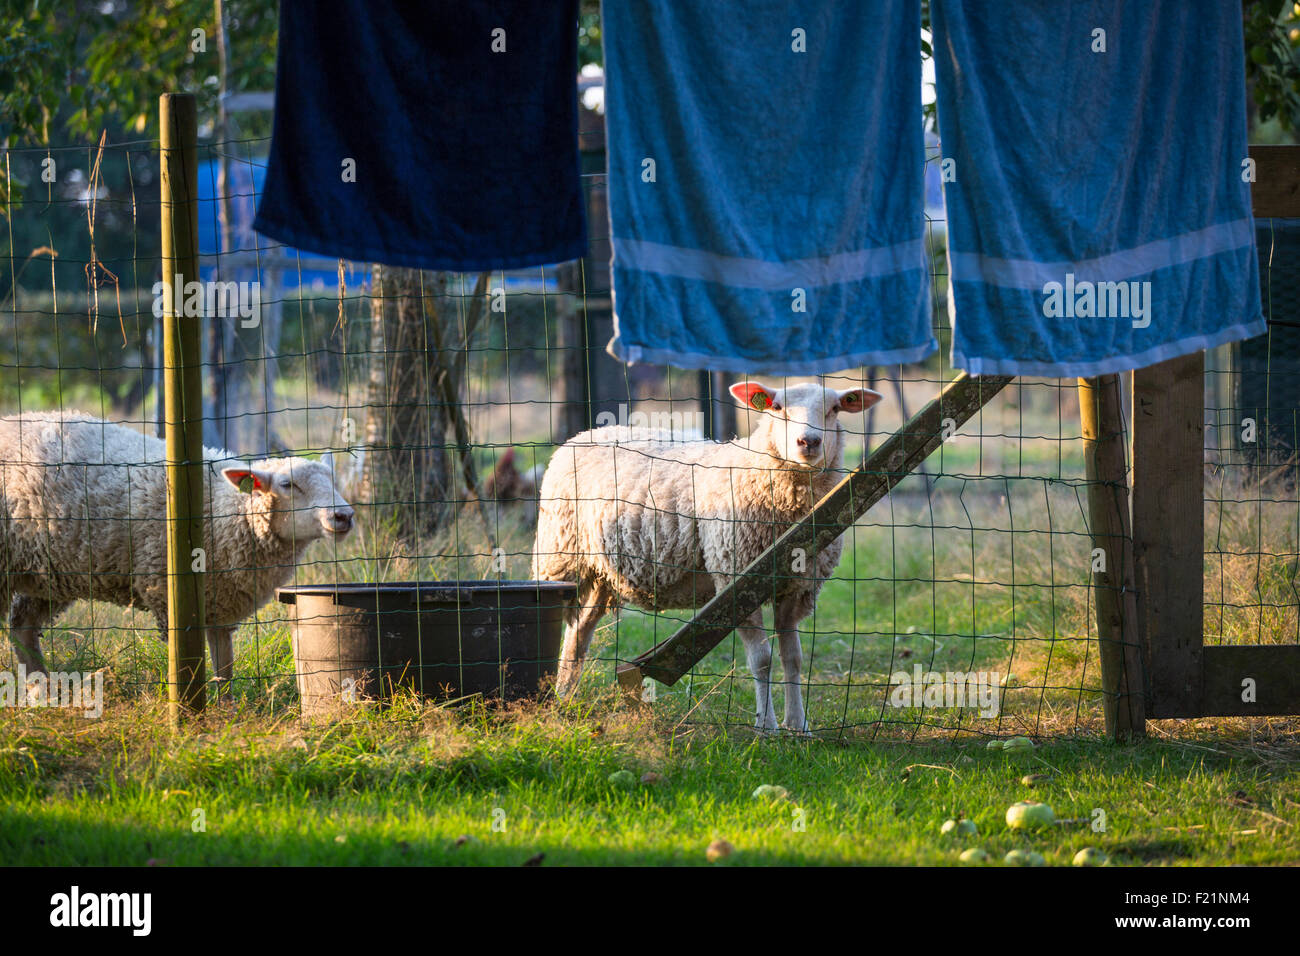 Sheep behind laundry in a rural garden with beautiful evening light - Stock Image